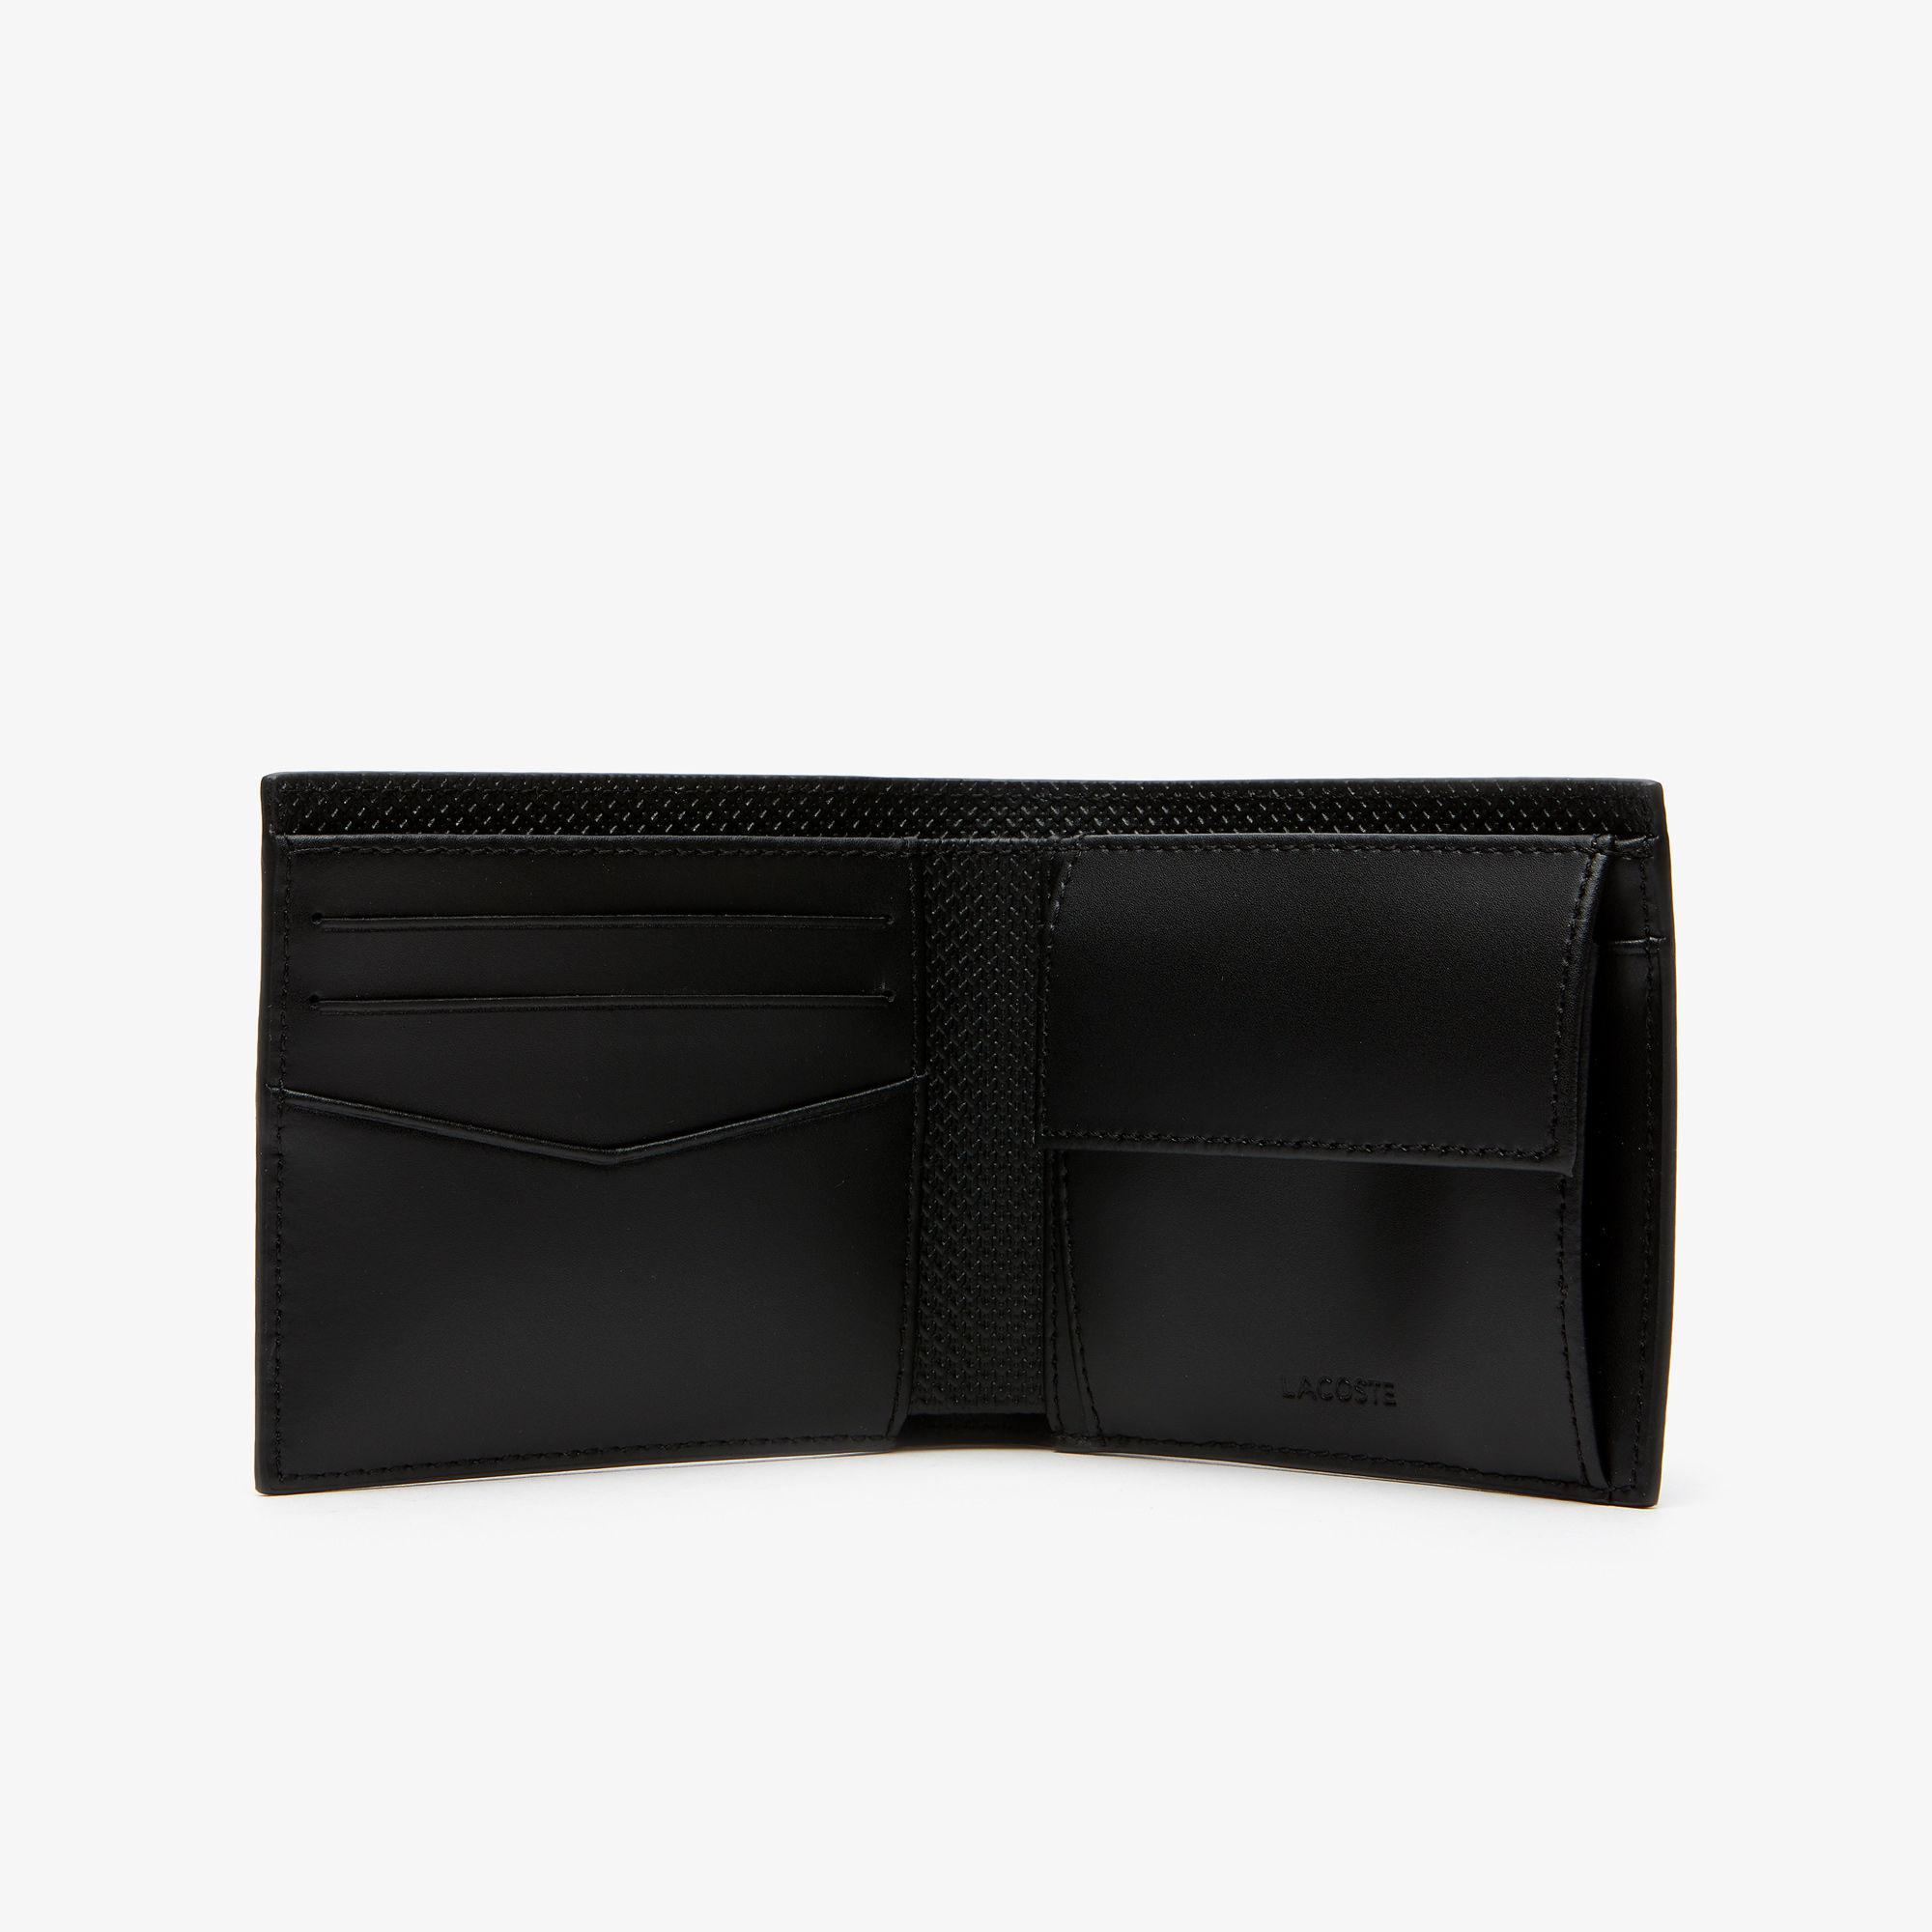 c0e57eac951 Lacoste - Black Chantaco Piqué Leather Wallet And Card Holder Set for Men -  Lyst. View fullscreen